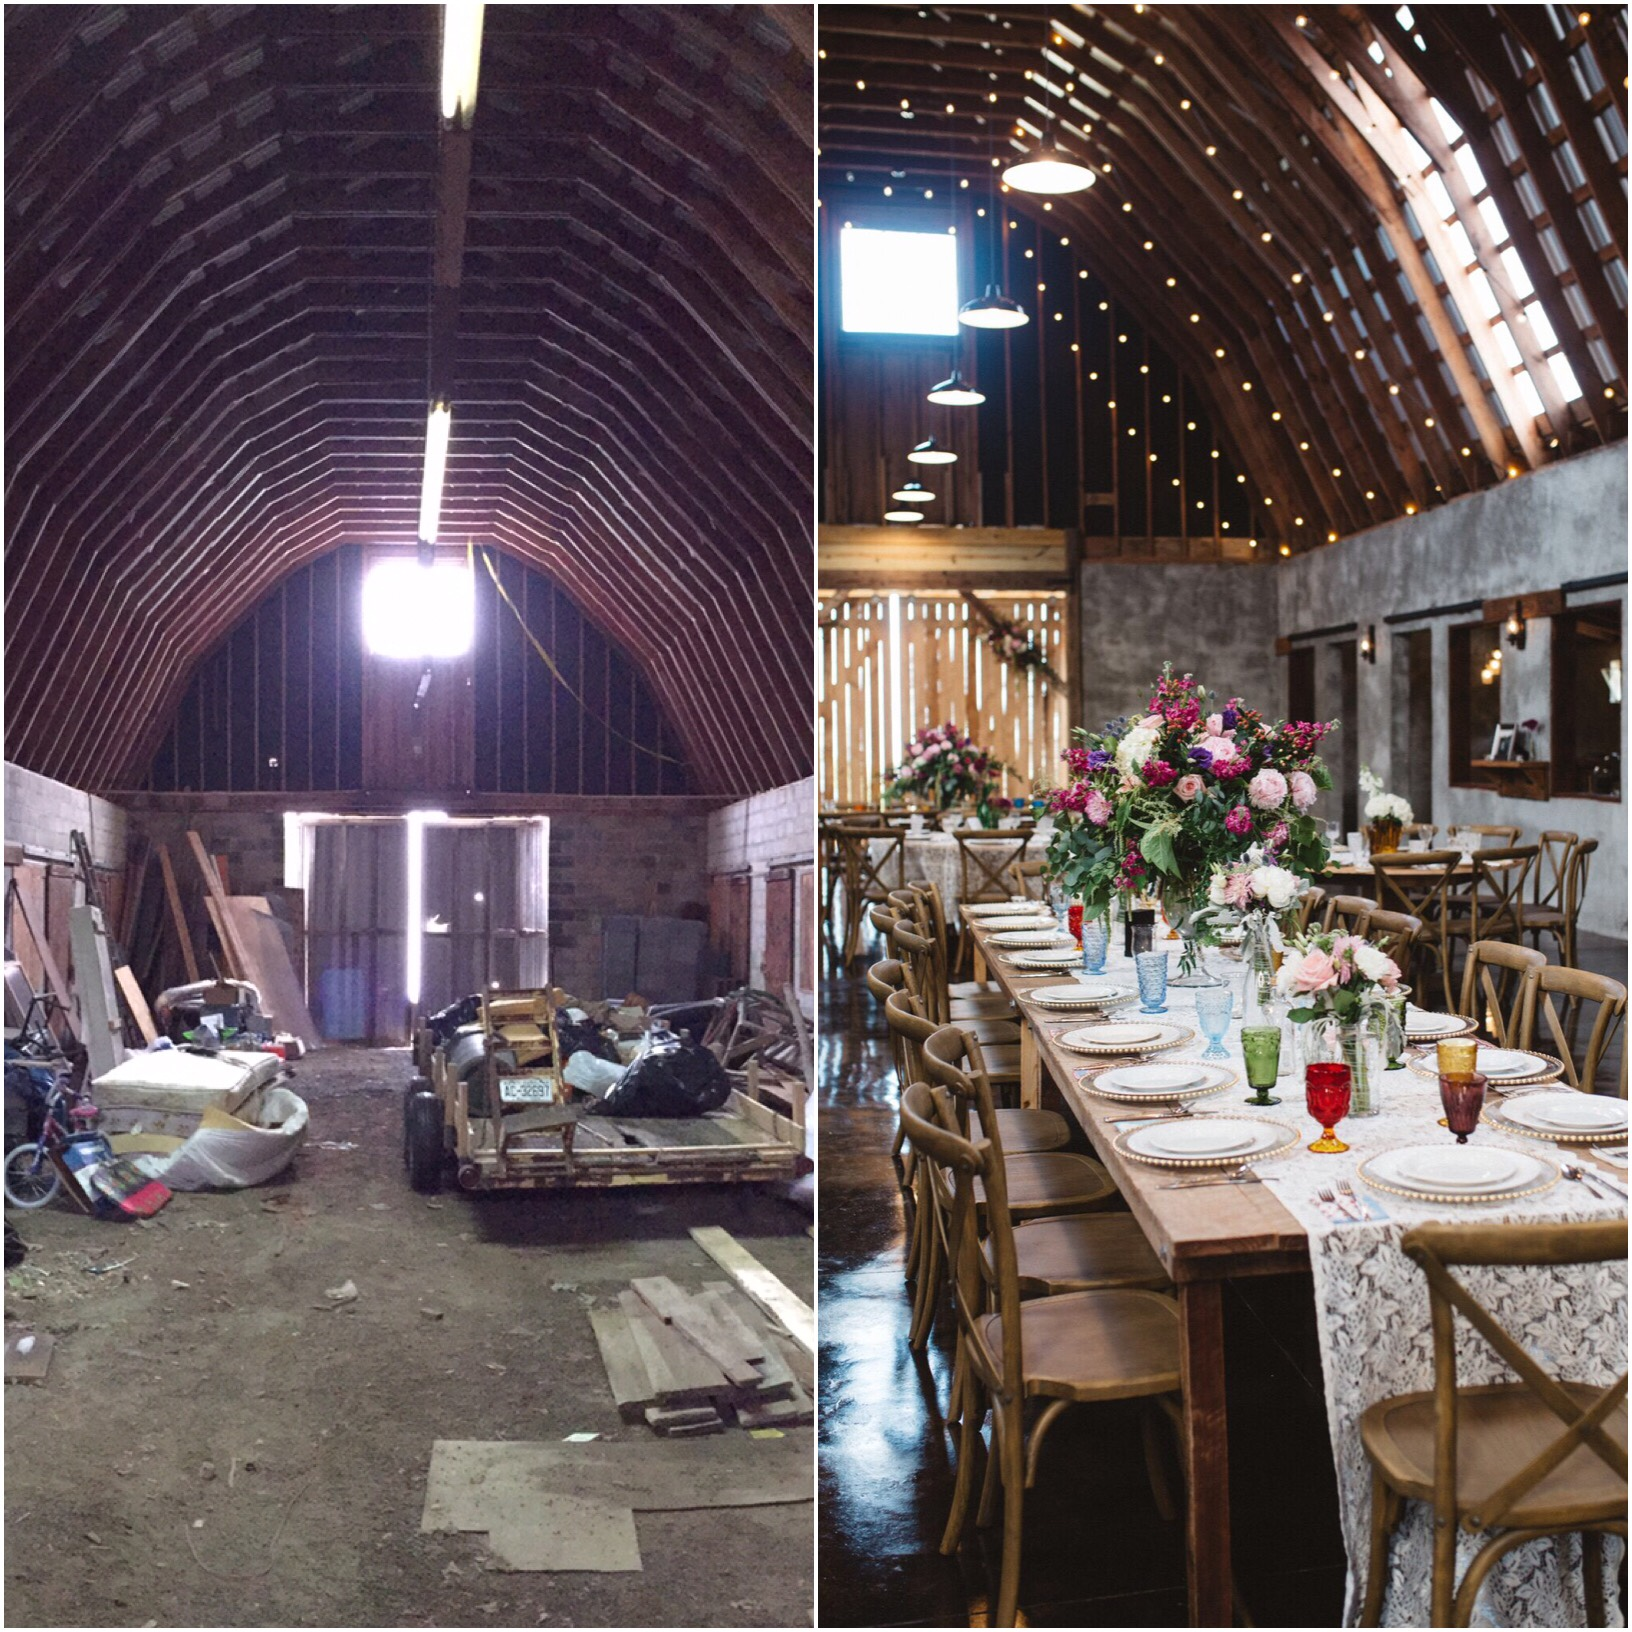 Overlook Barn Before and After